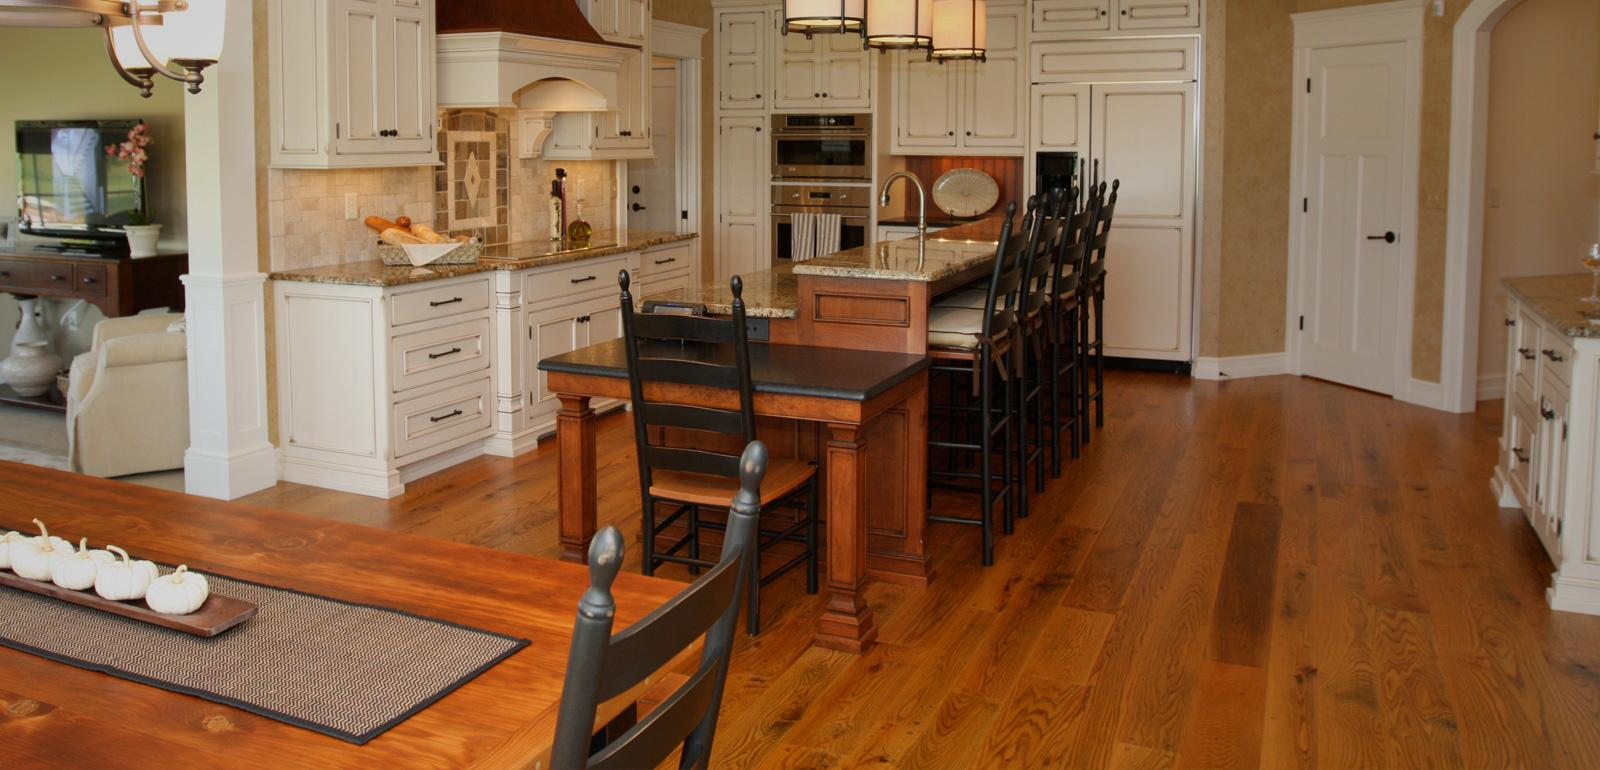 Custom flooring - white oak wide plank hardwood floor in kitchen